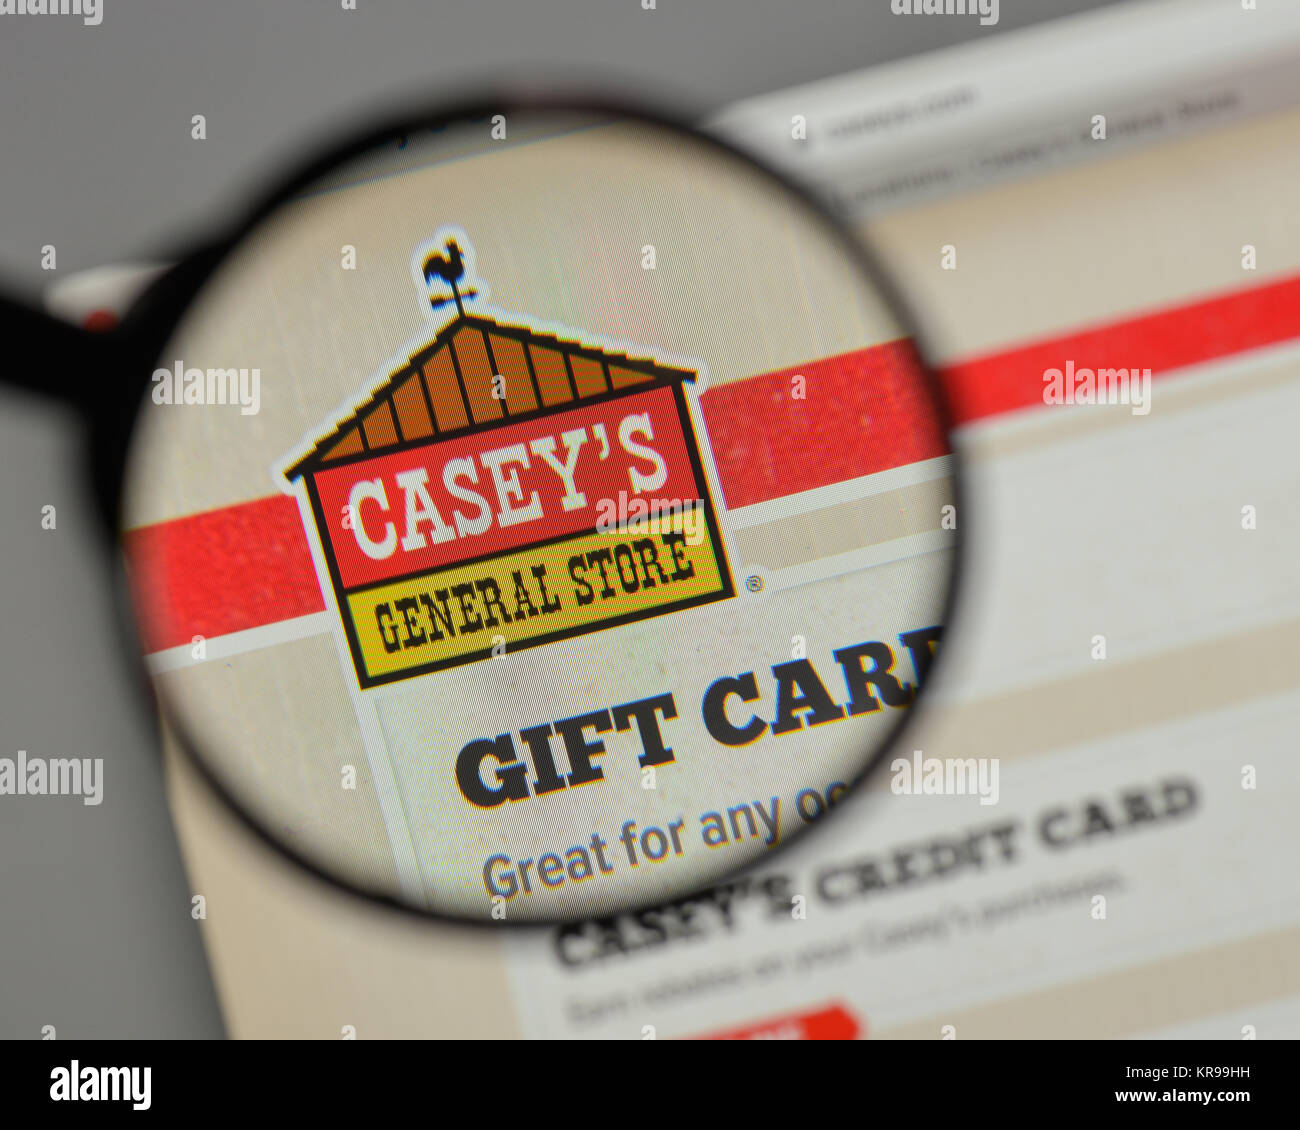 General Store Stock Photos General Store Stock Images: Caseys Stock Photos & Caseys Stock Images